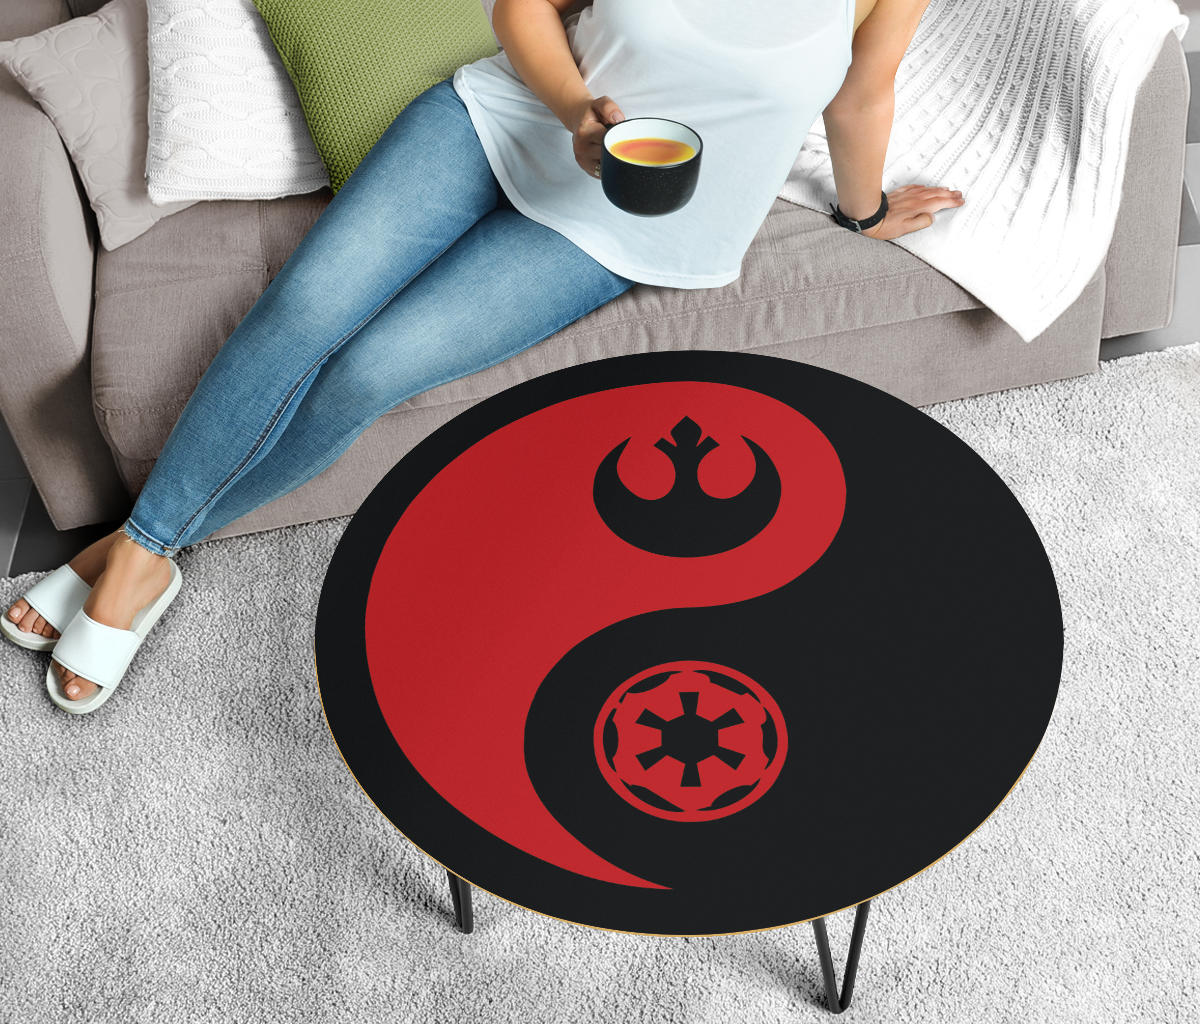 Star Wars Coffee Table - Yin Yang - Red